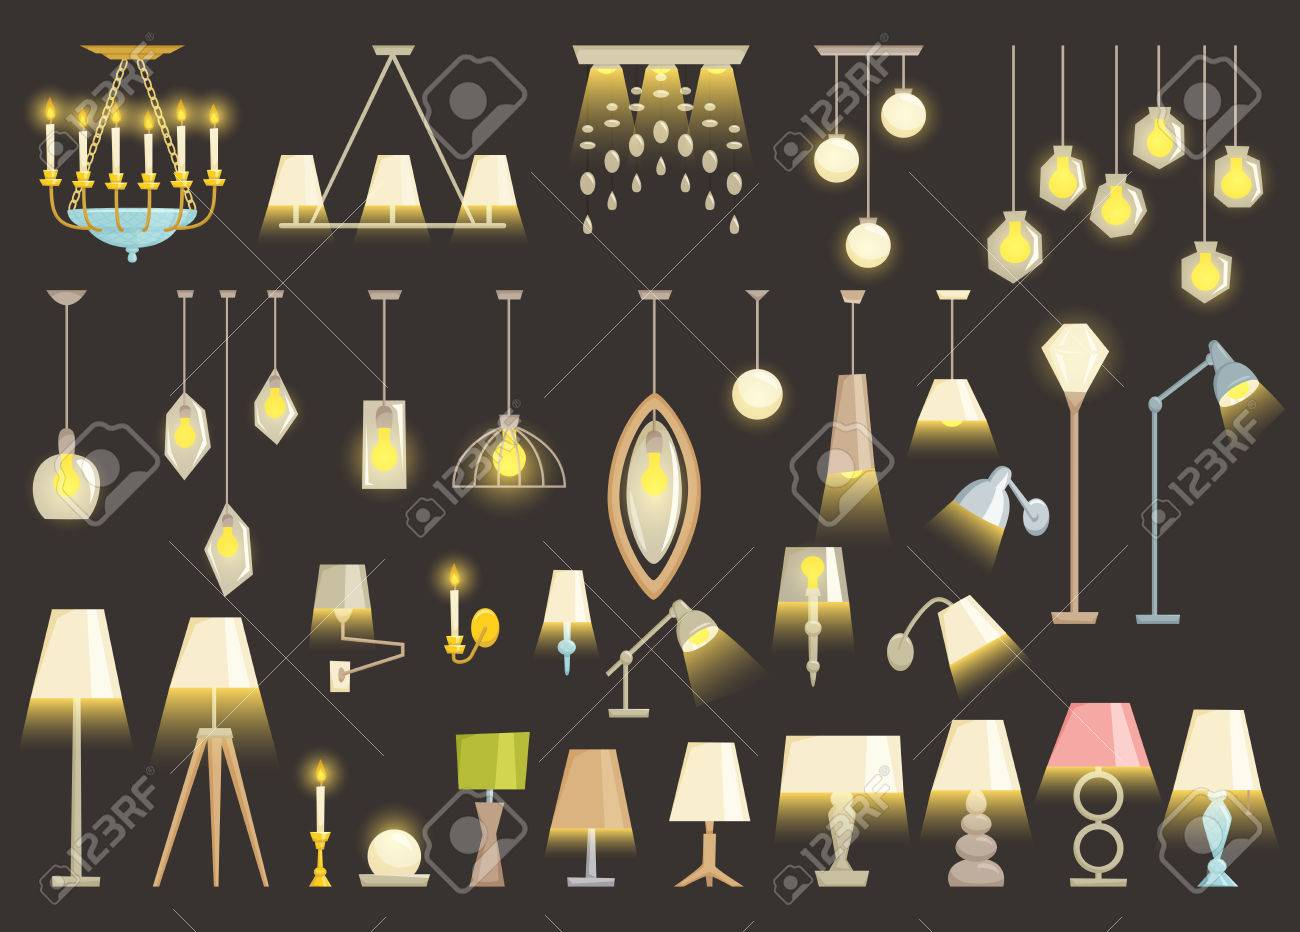 Lighting Design Vector : Lamp set isolated on black background interior light design